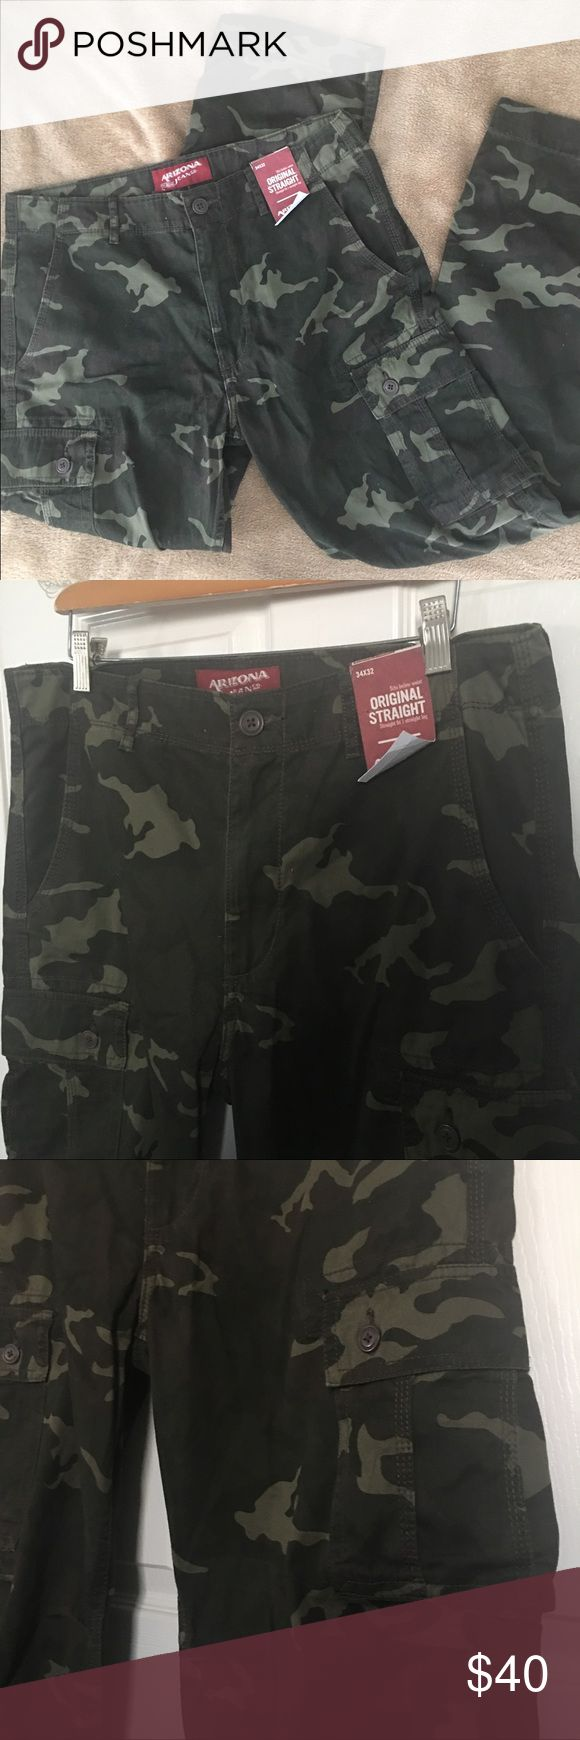 NWT Arizona jeans men's camo pants sz 34x32 NWT Arizona jeans (Jc penny)men's green camo pants straight leg sz 34x32, cargo pockets one in each thigh with a pleated knee detail (see pic) which allows for knee movement. Arizona Jean Company Pants Cargo